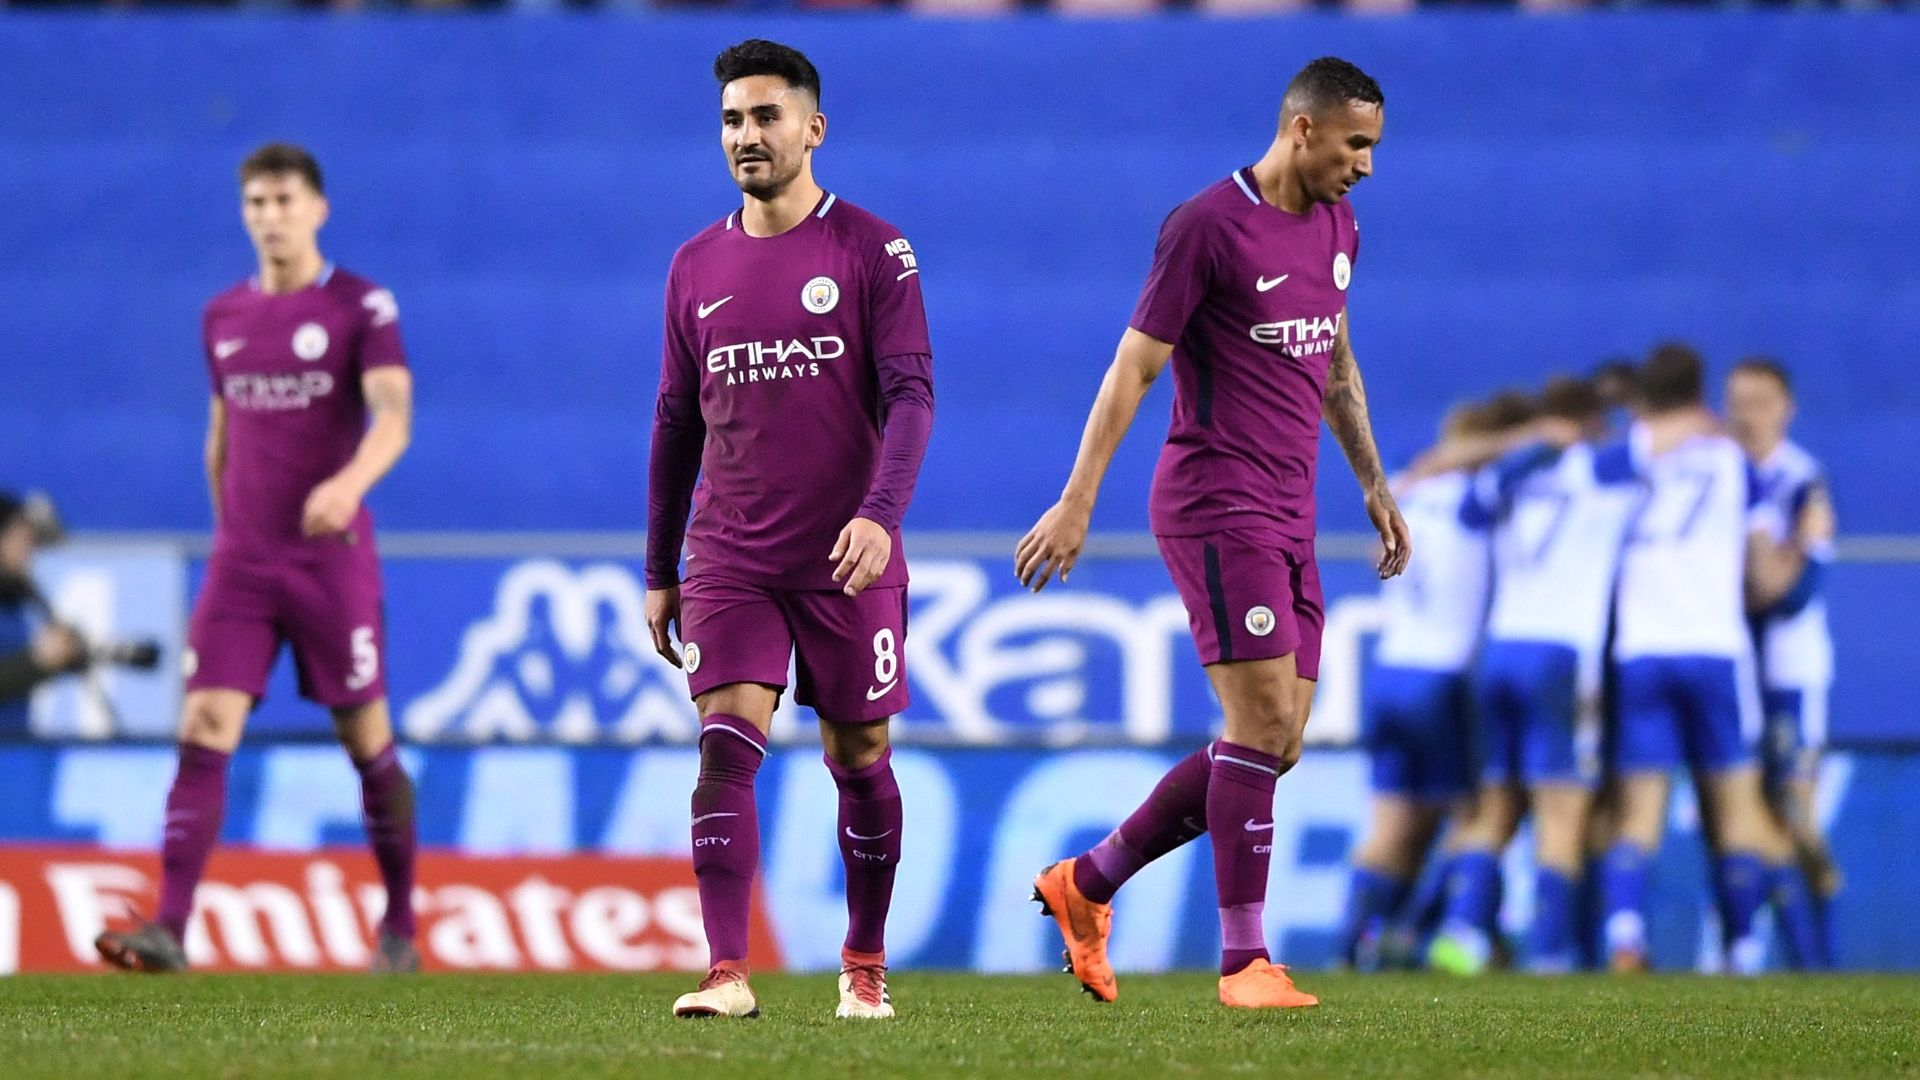 Man City must regroup from Wigan shock